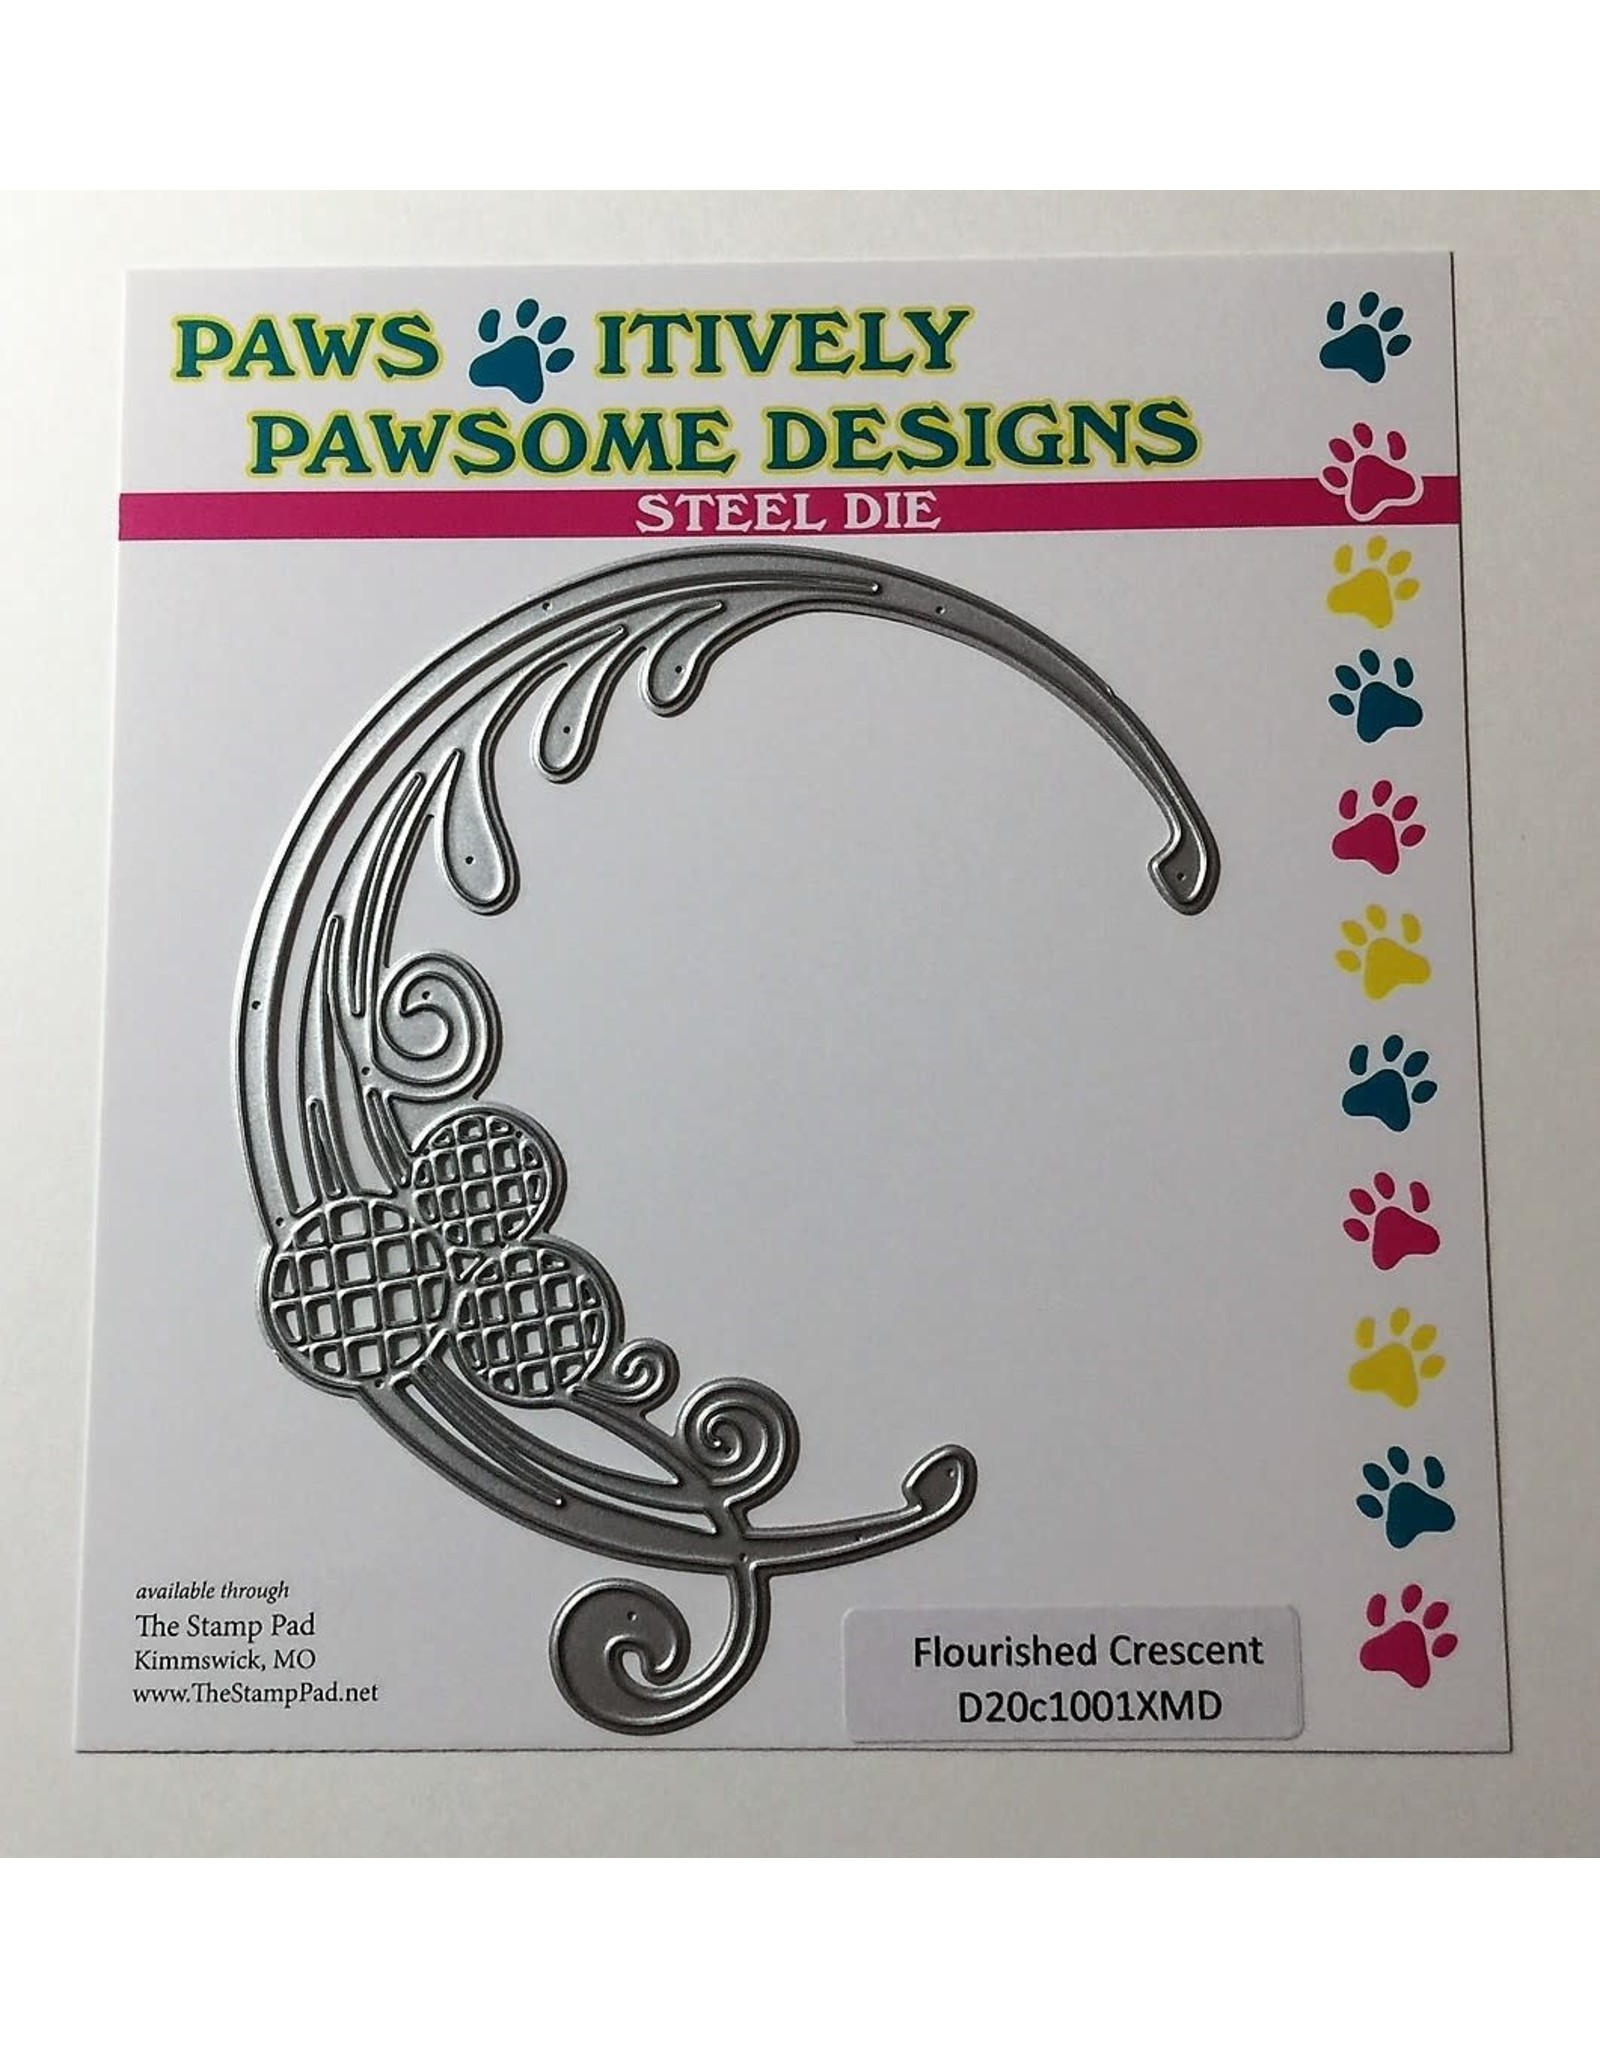 Paws-Itively Pawsome Designs Flourished Crescent Die